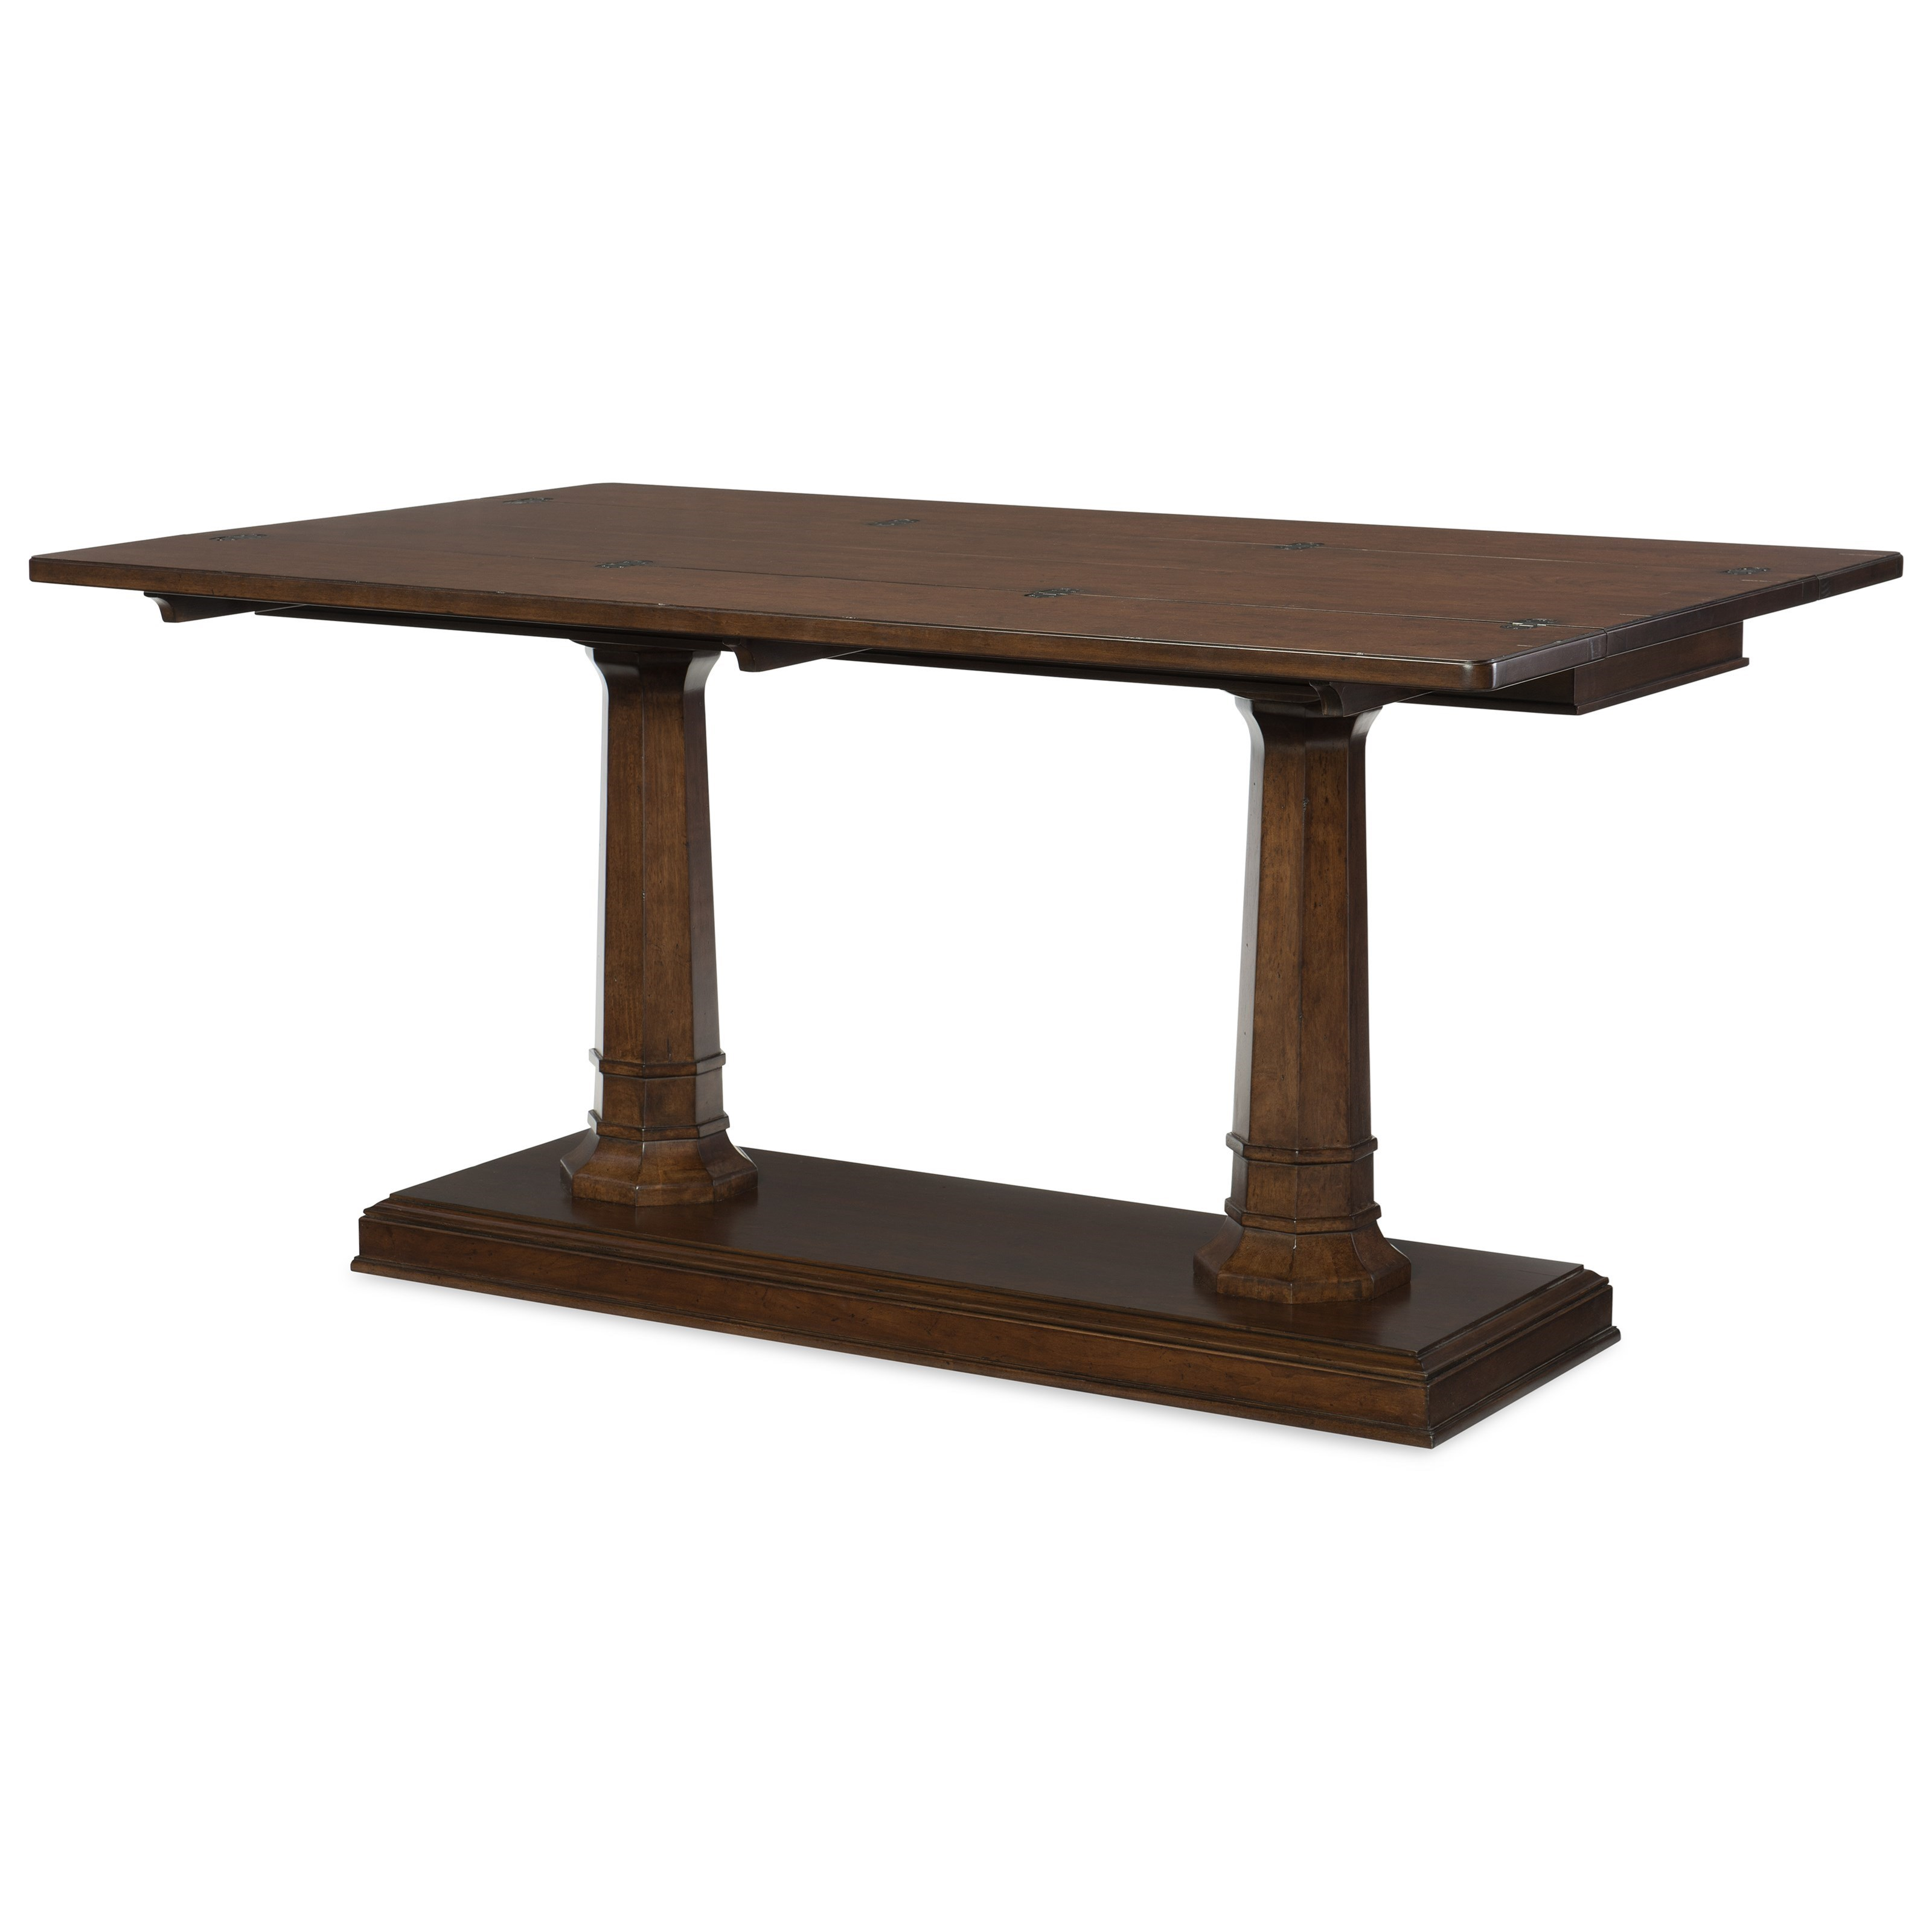 Rachael Ray Home by Legacy Classic Upstate Flip Top Console Table - Item Number: 6040-506